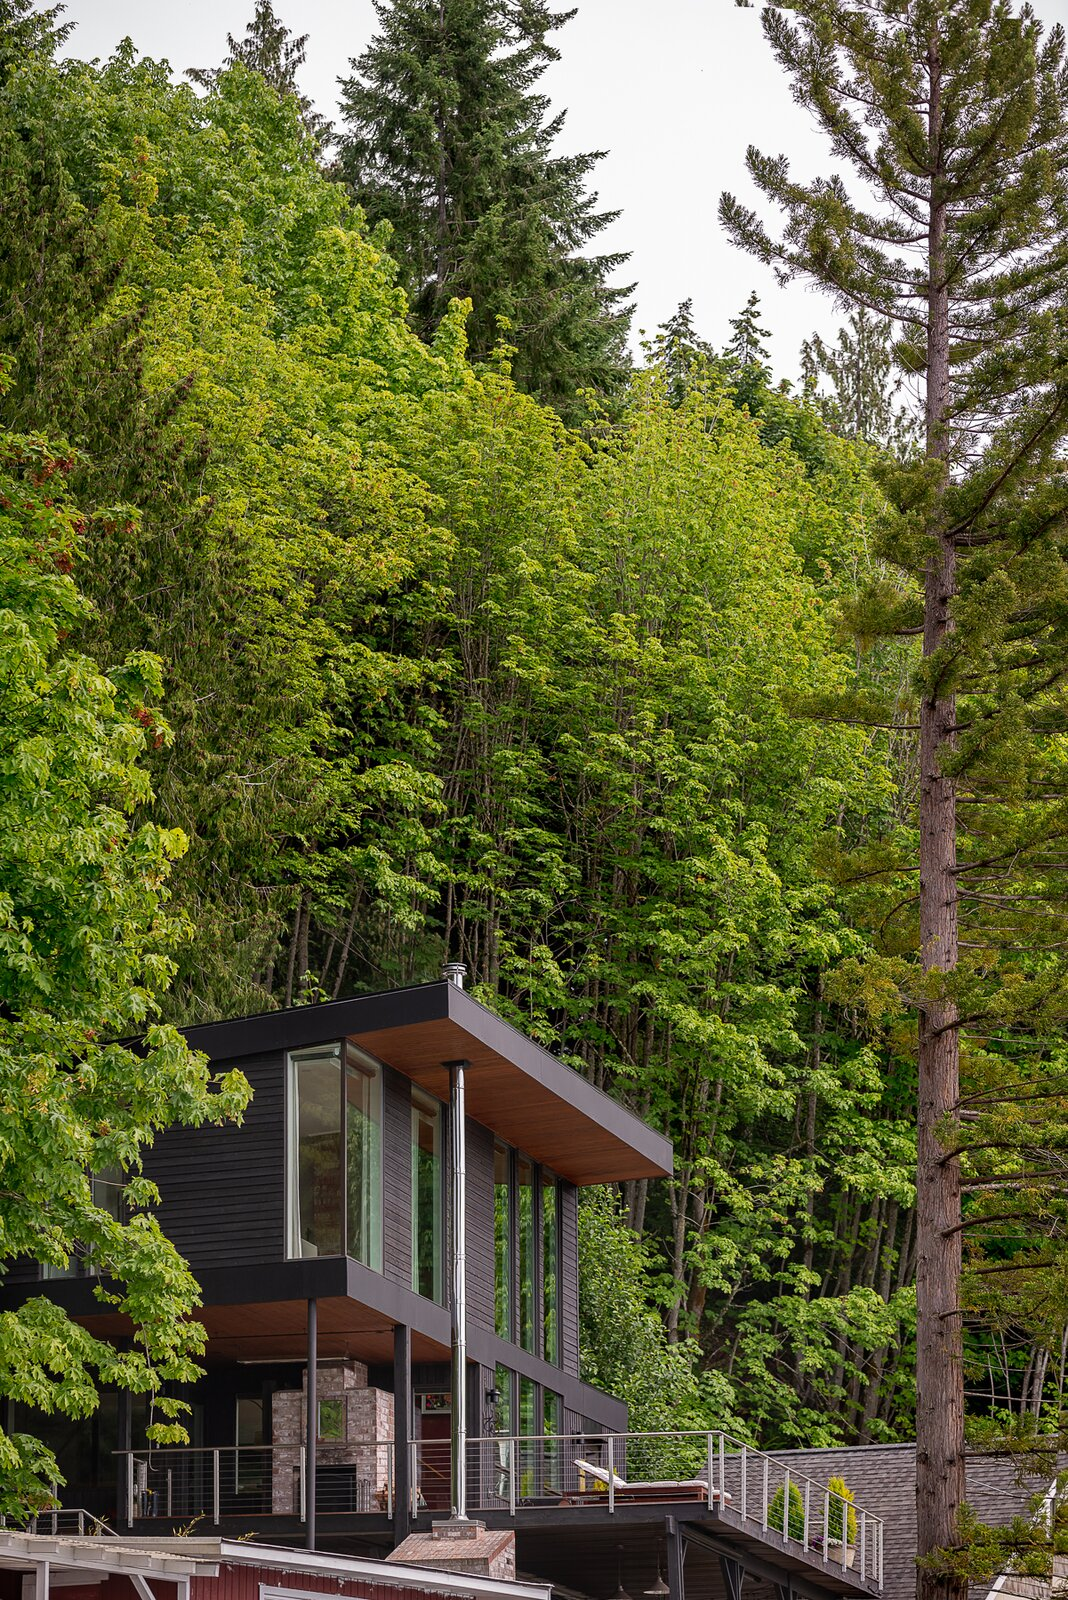 Exterior and House Building Type  Photo 2 of 13 in A Waterfront Home in Washington Grows Two Hovering Wings